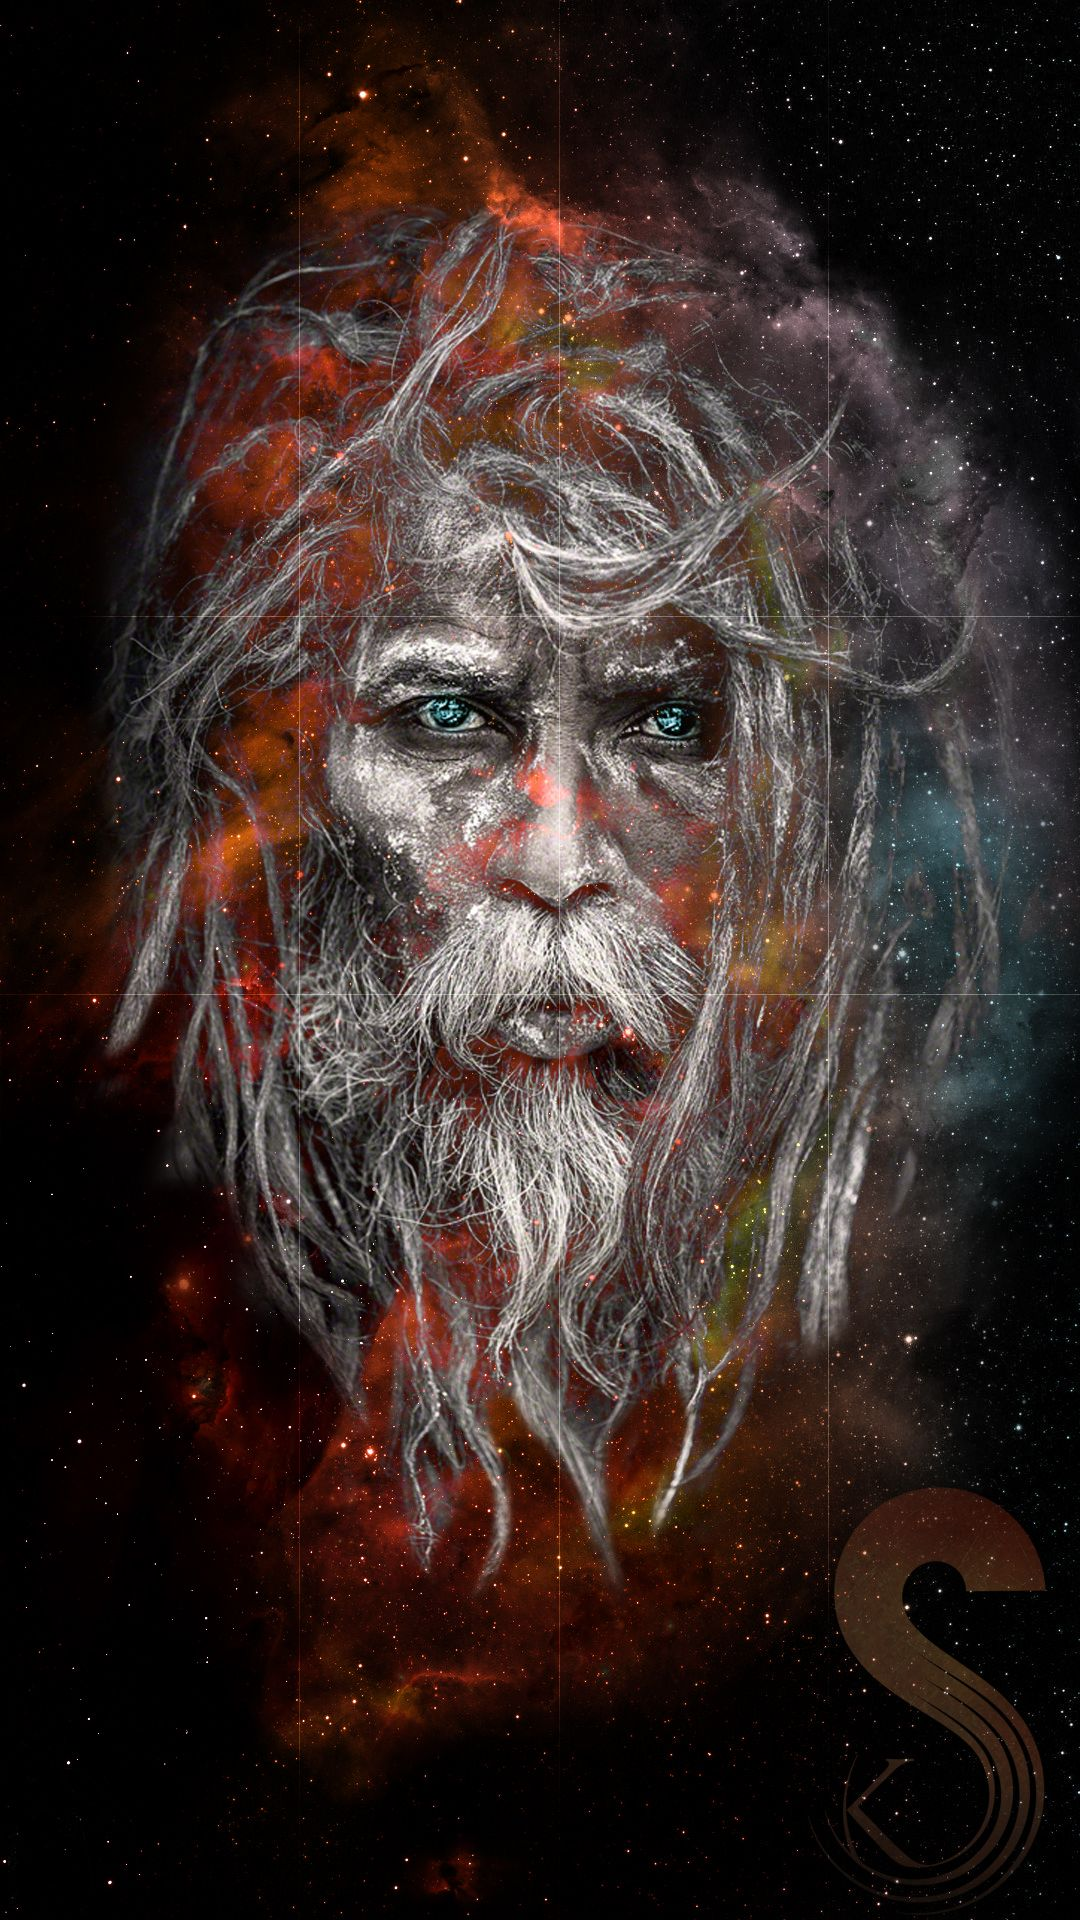 Aghori: Cannibal Hindu Monks | Hindus, Culture and Search | MAHADEV